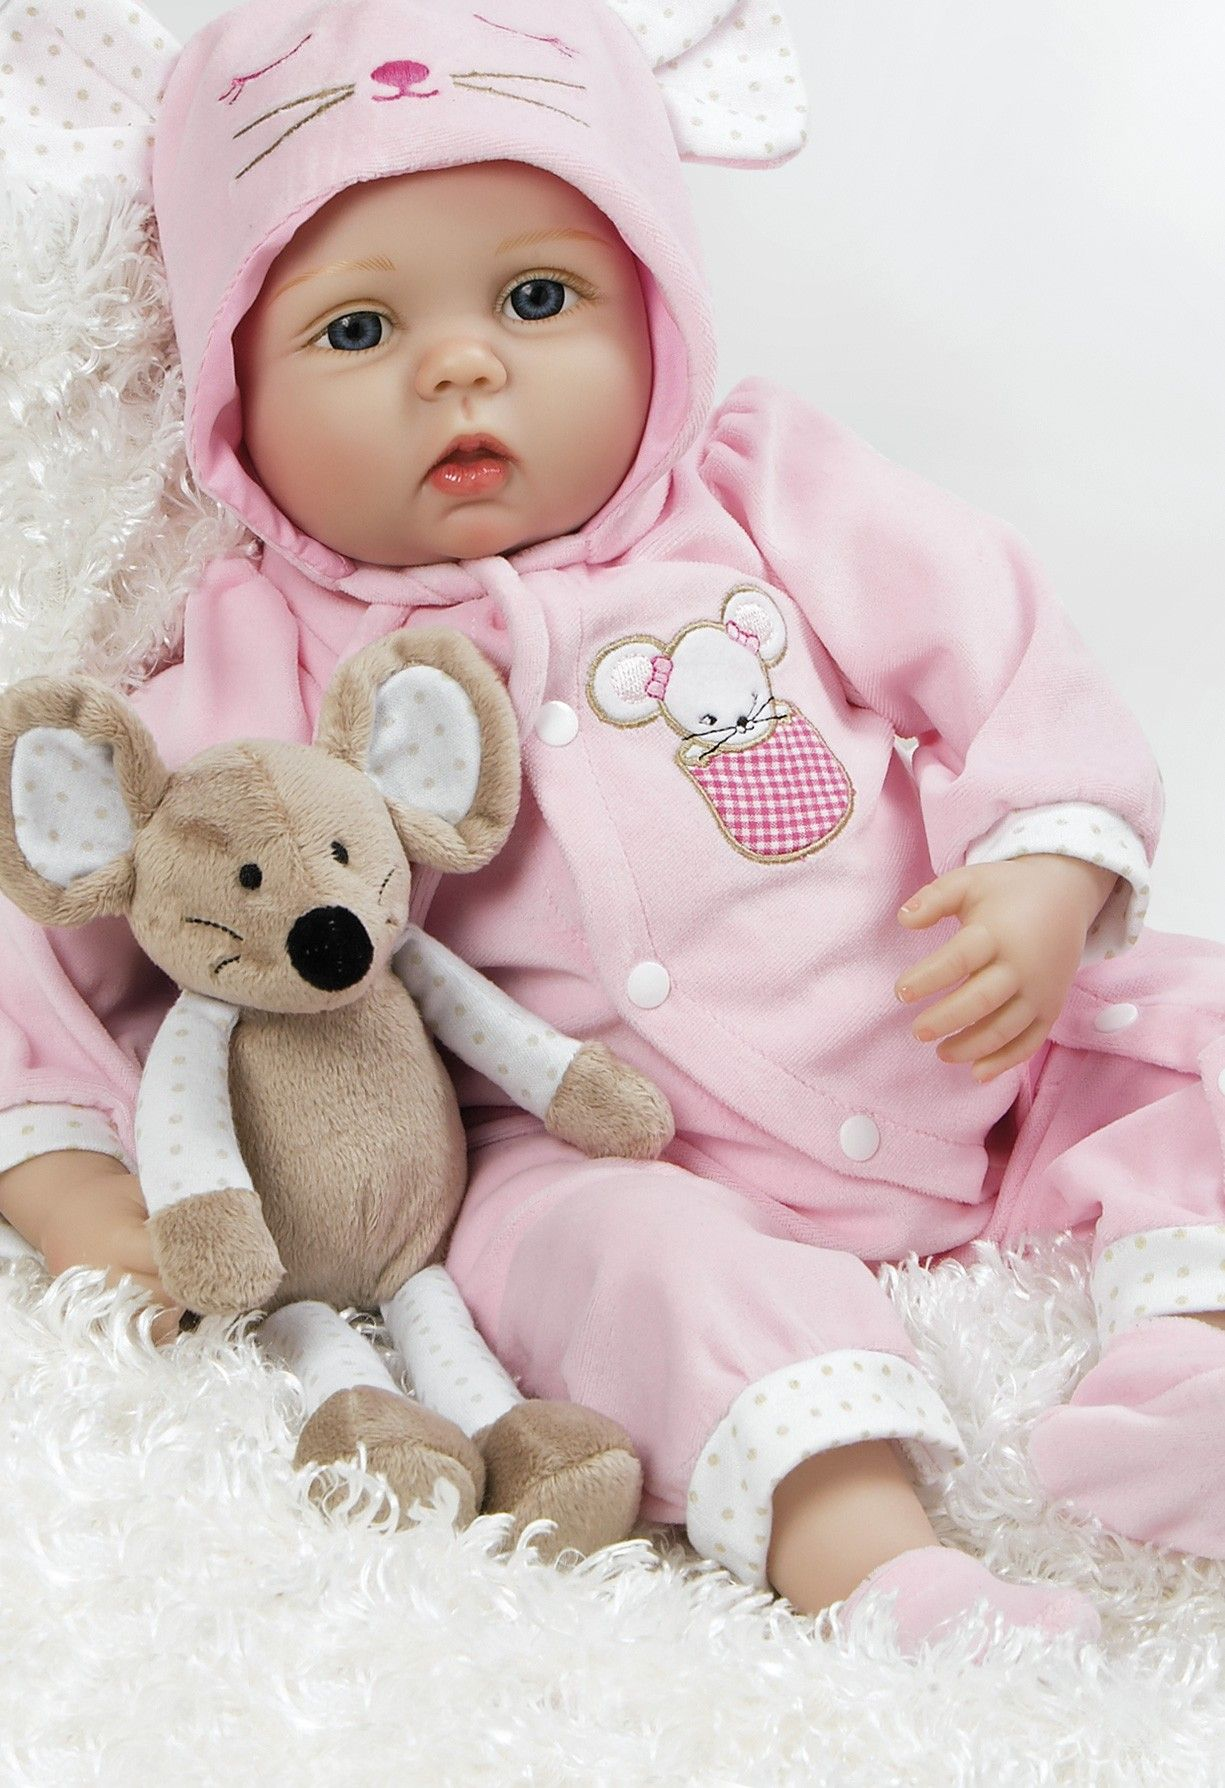 Baby Doll that Looks Real, Mia Mouse, 21 inch Silicone